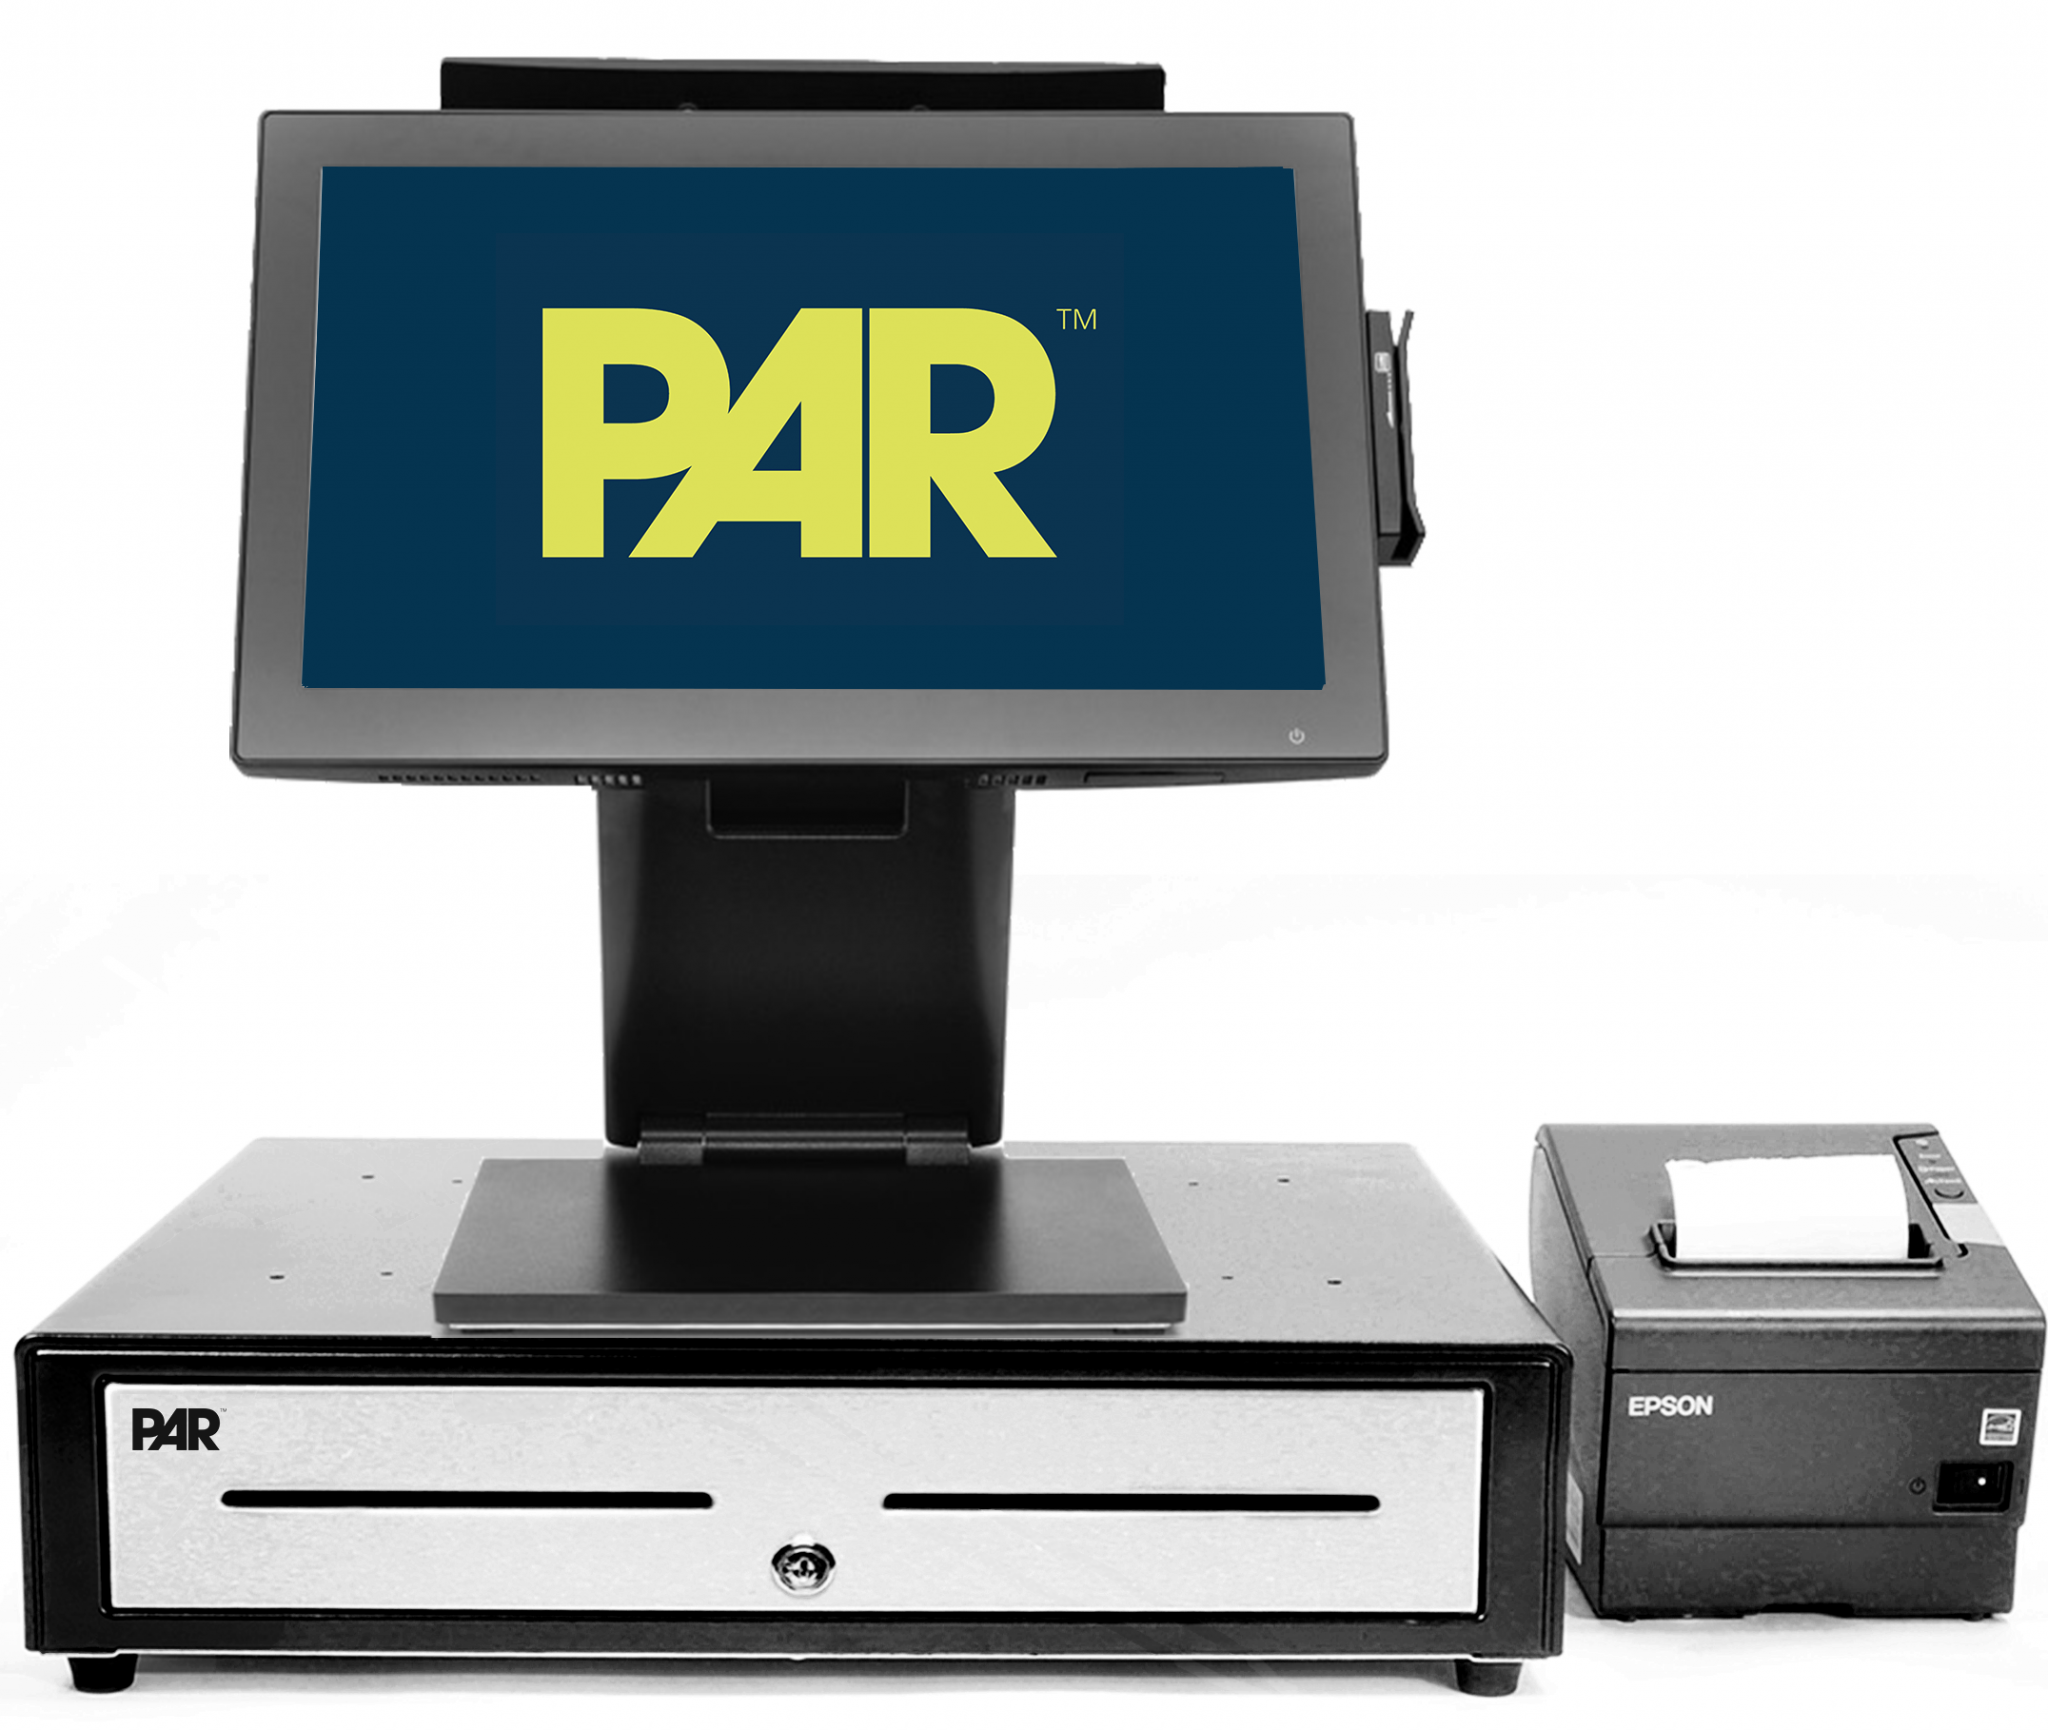 PAR Console with Printer and Register